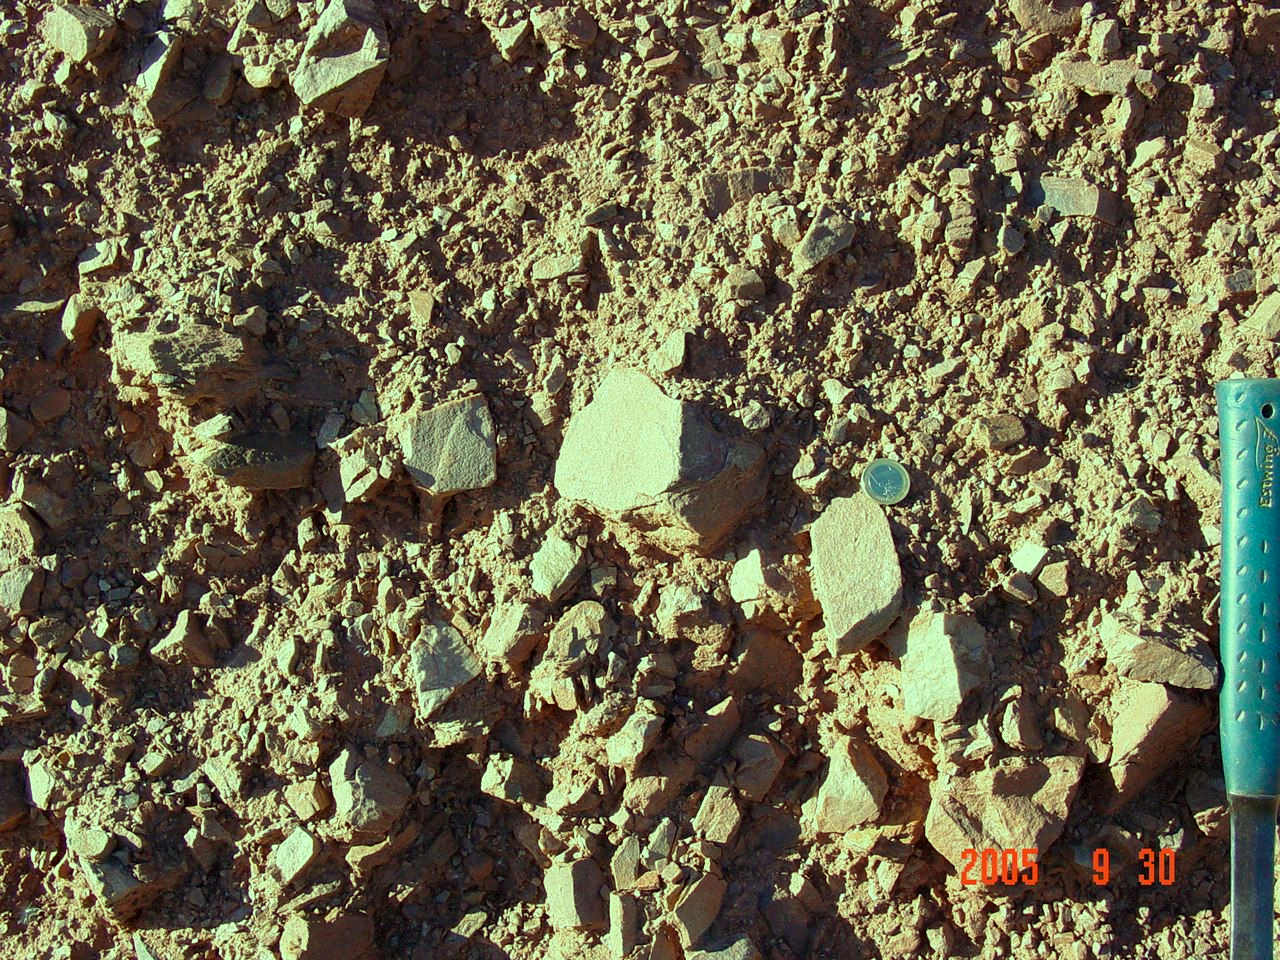 detail of the Pelarda Fm. ejecta diamictic facies, Azuara impact